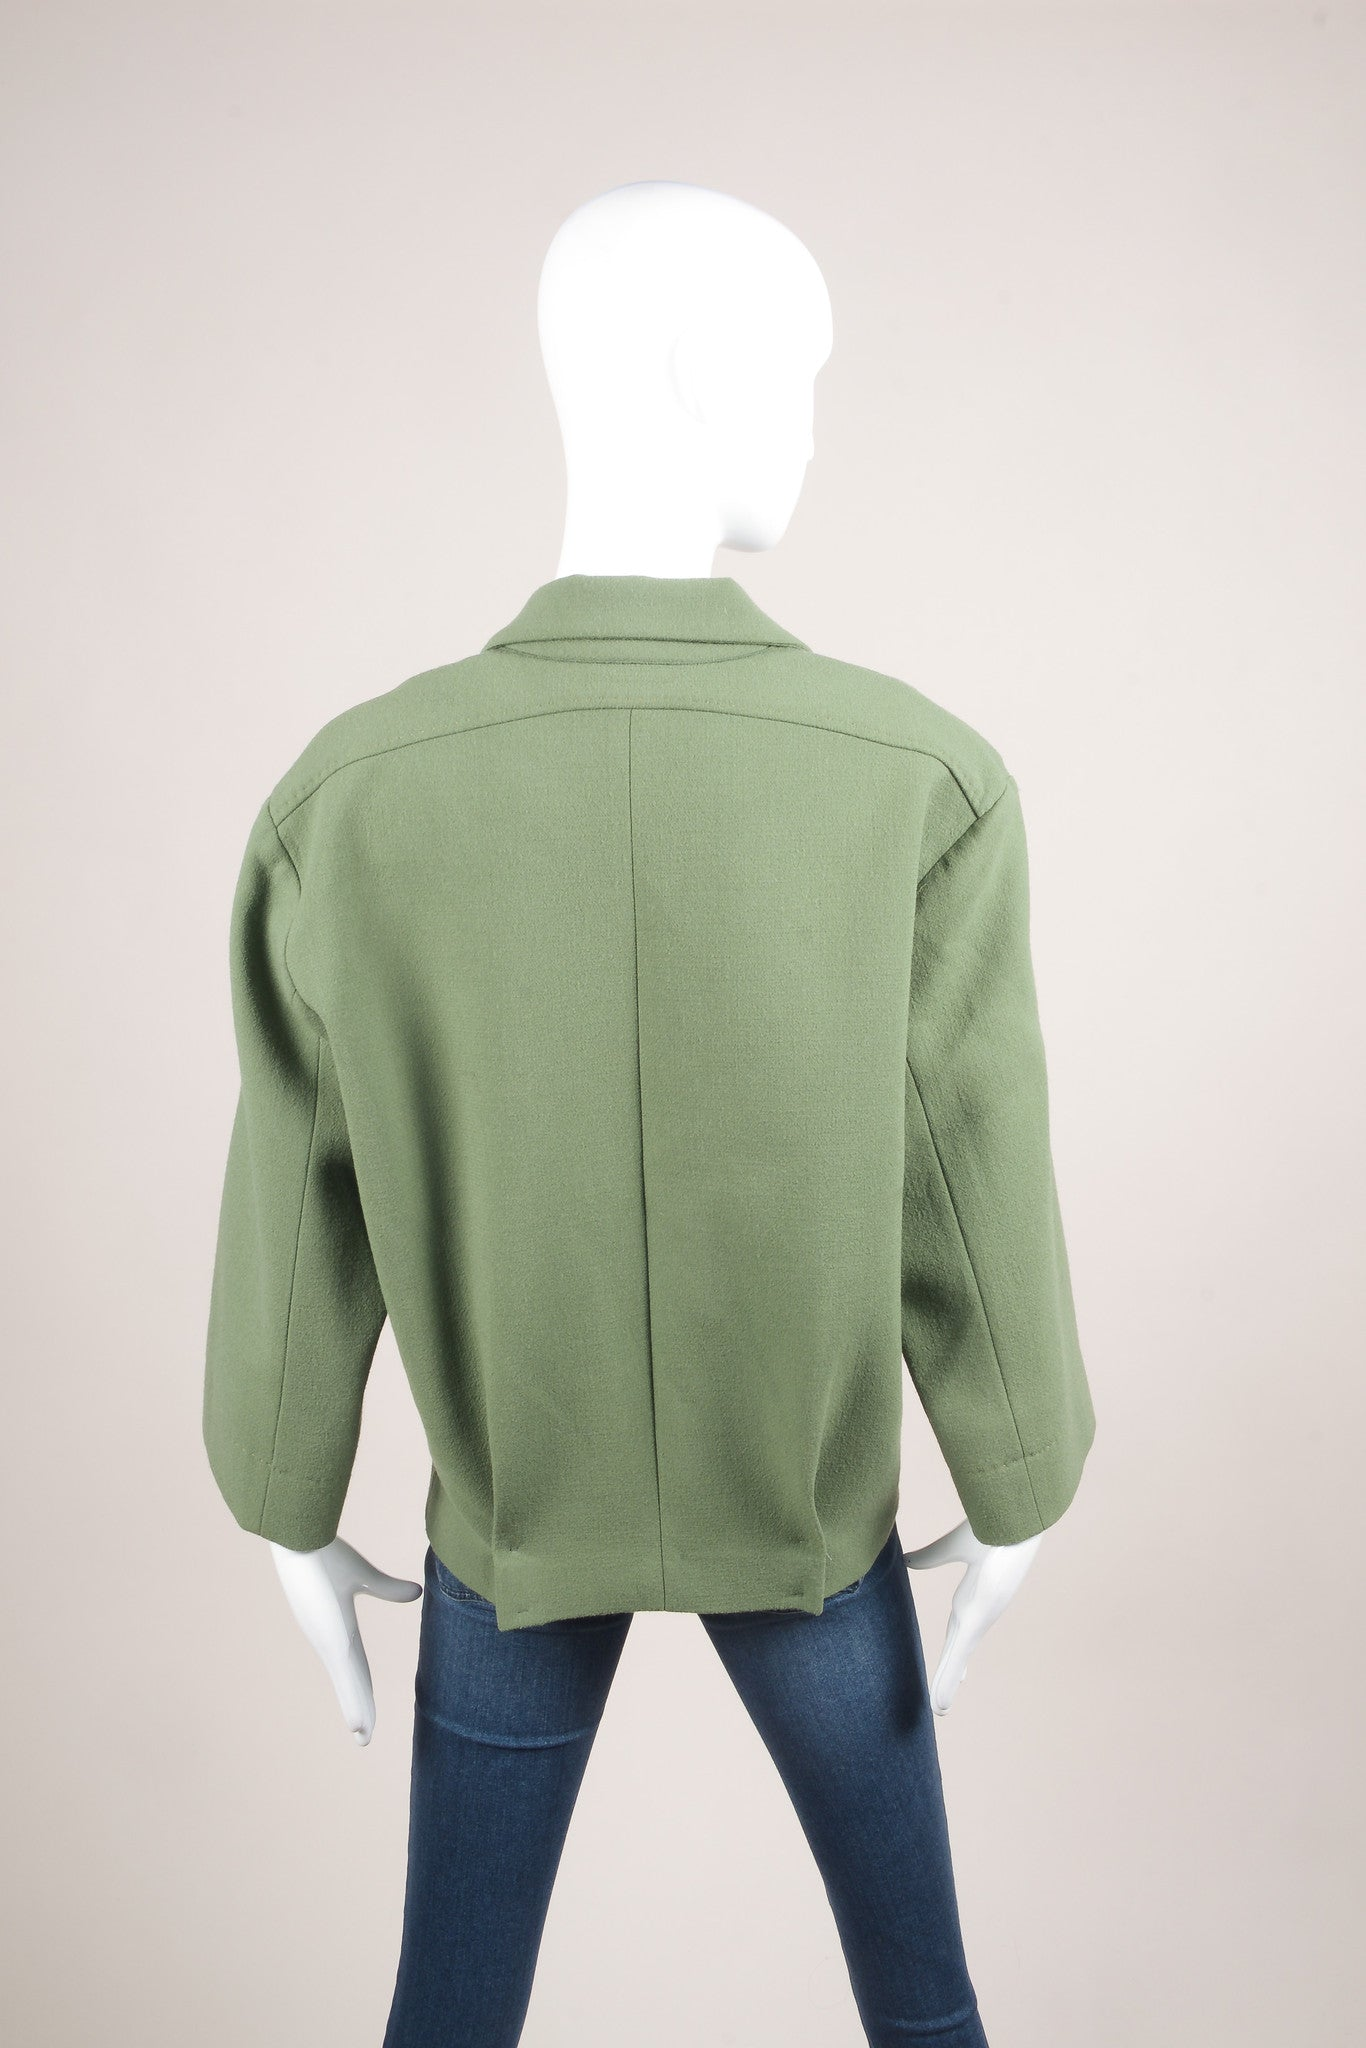 Roland Mouret Green Wool Knit Magnetic Button Oversized Jacket Backview